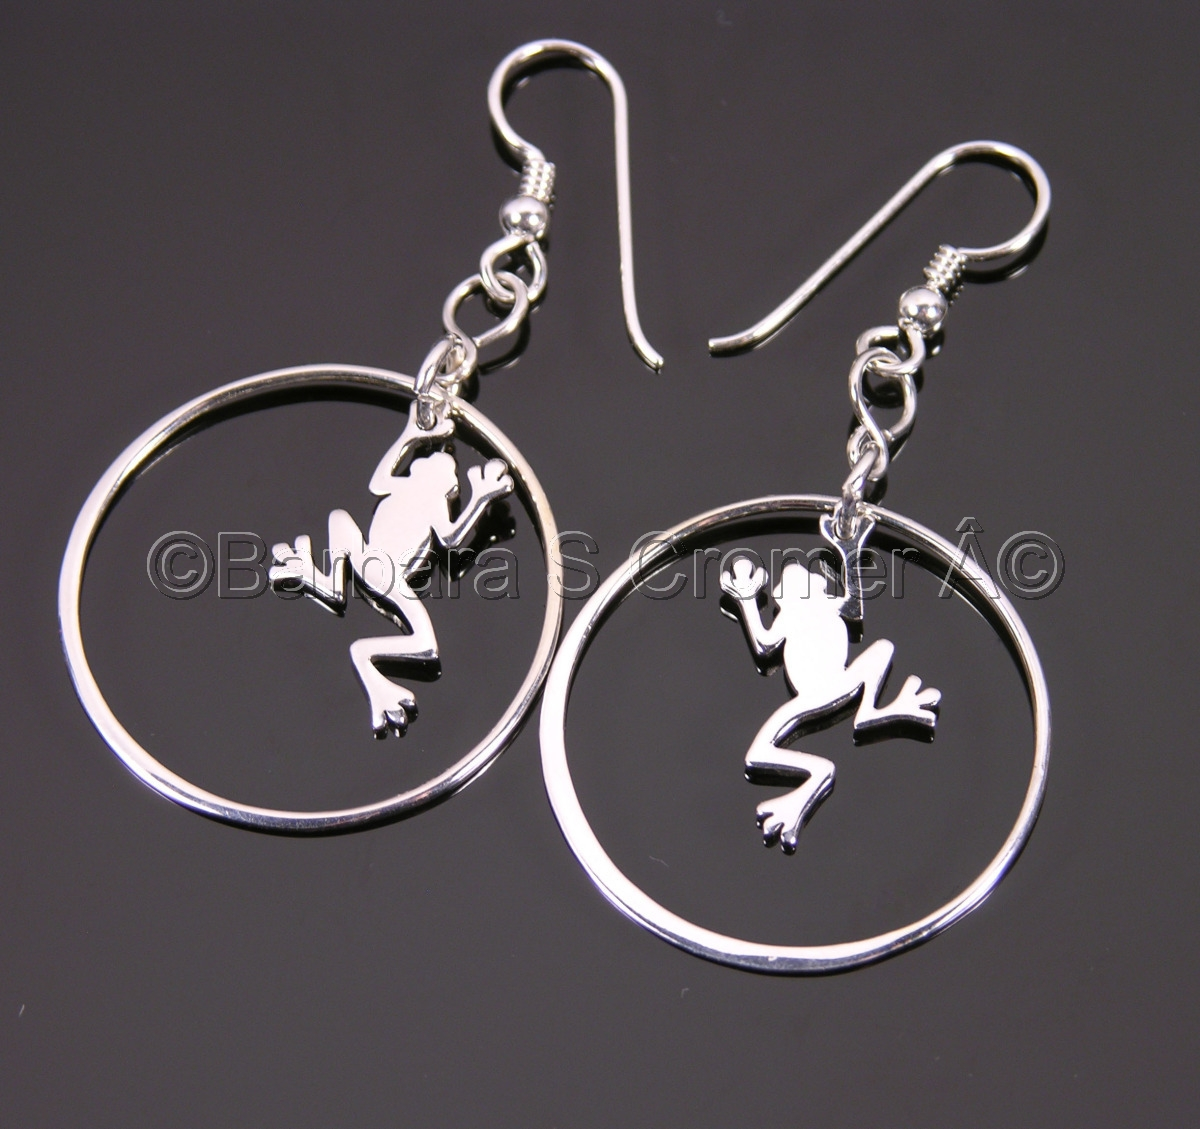 Silver frogs in silver circles earrings (large view)